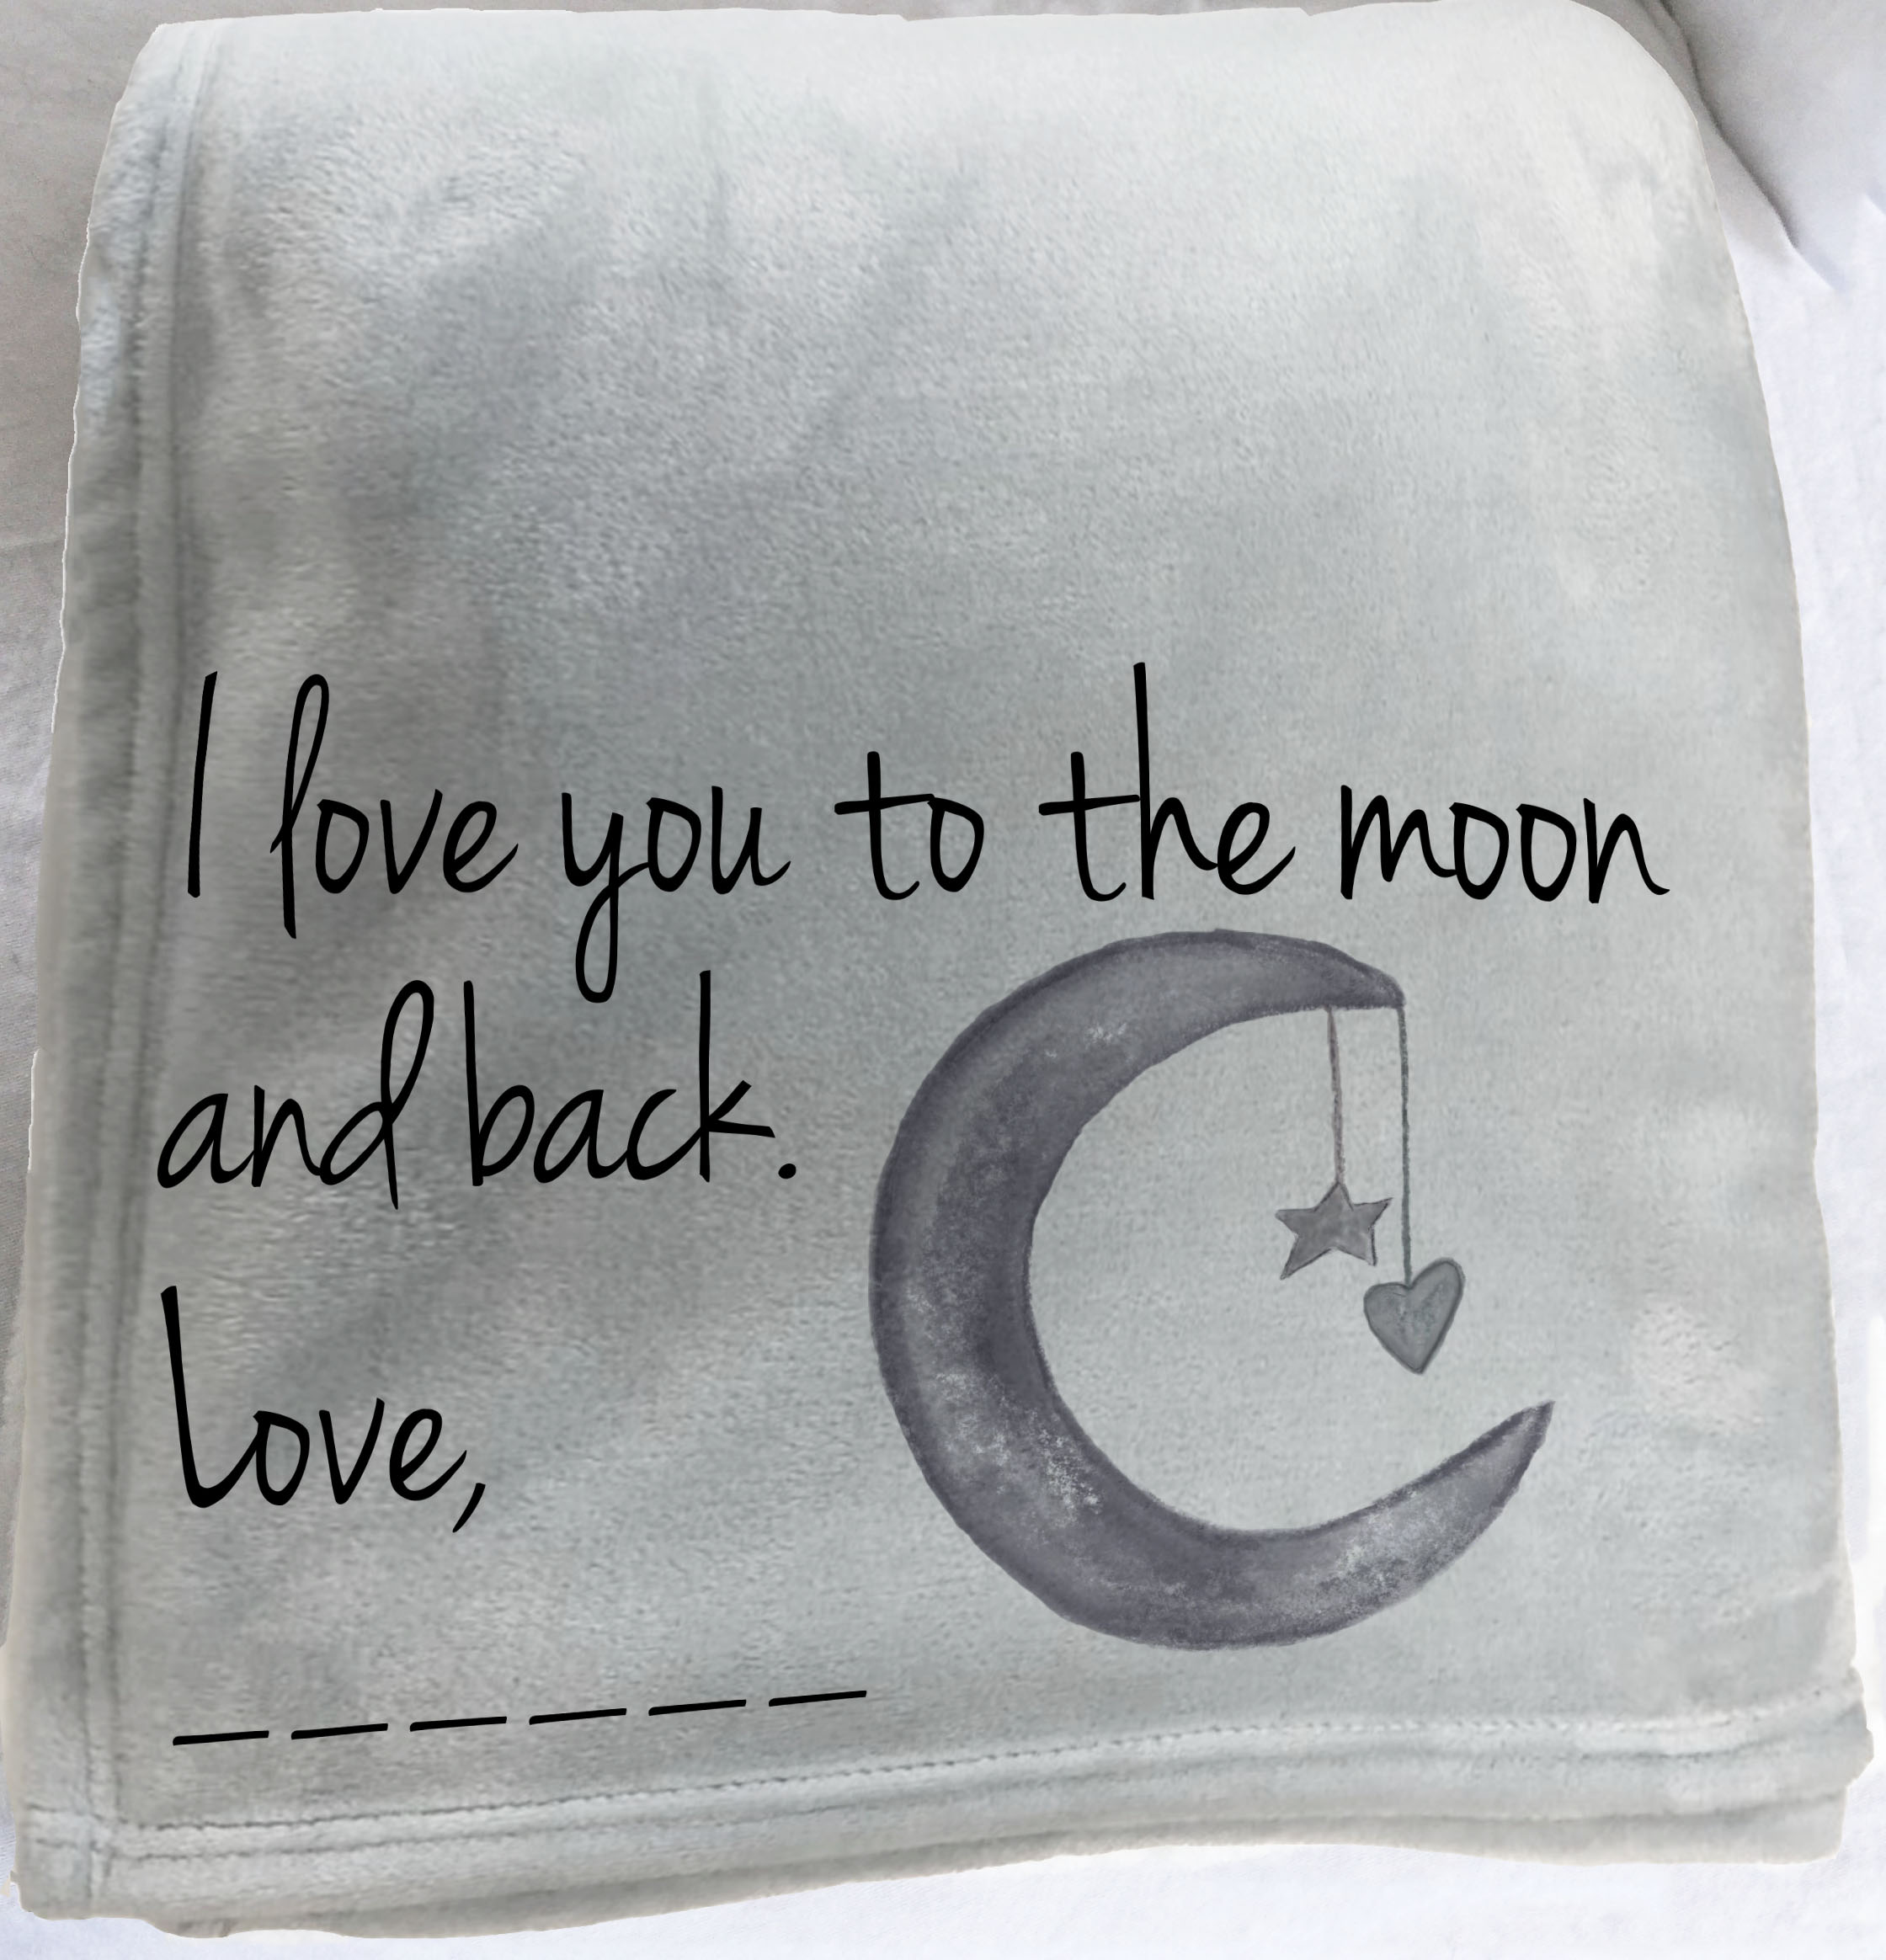 Personalized Custom Throw Blanket I Love You To The Moon And Back Fleece Blanket Hug Blanket Blanket With Words Moon And Stars Photo B